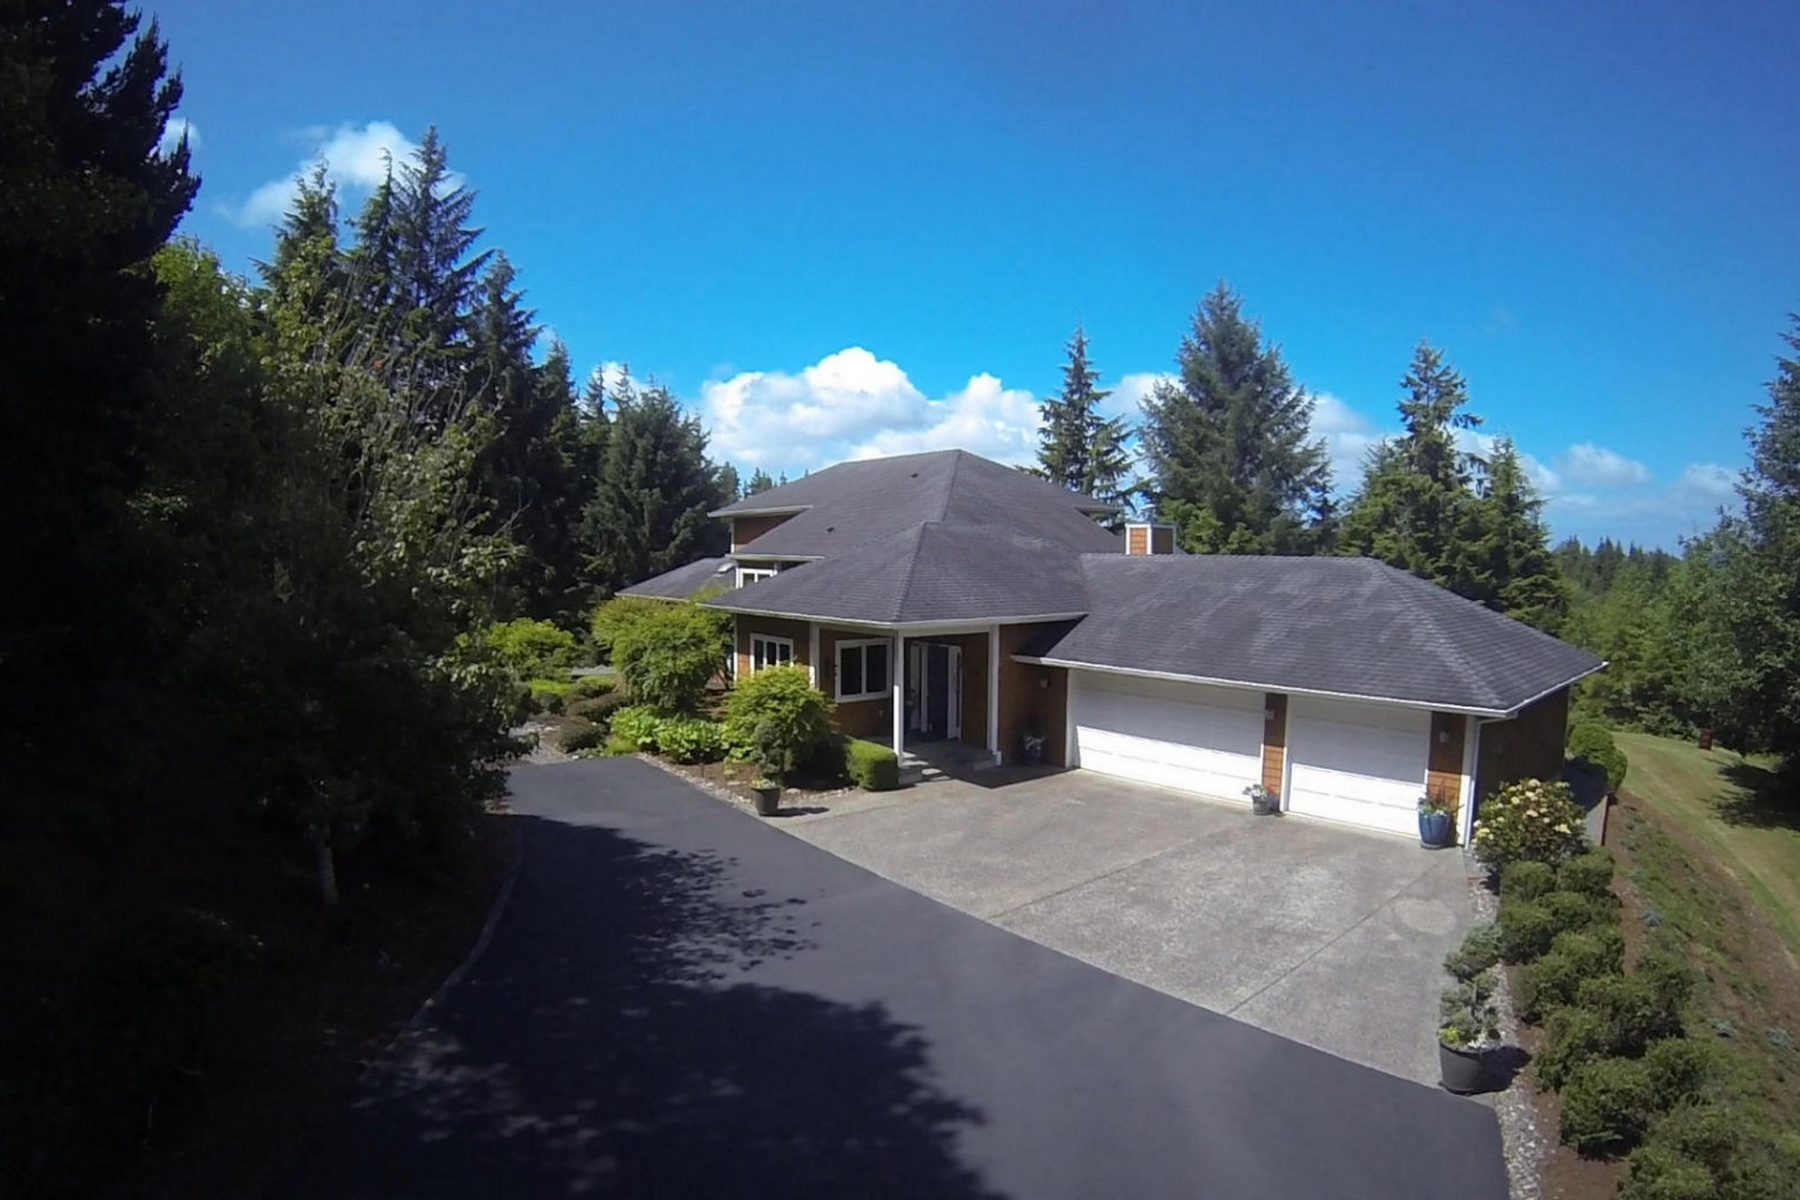 Single Family Home for Sale at 36762 Christians LN, ASTORIA Astoria, Oregon, 97103 United States